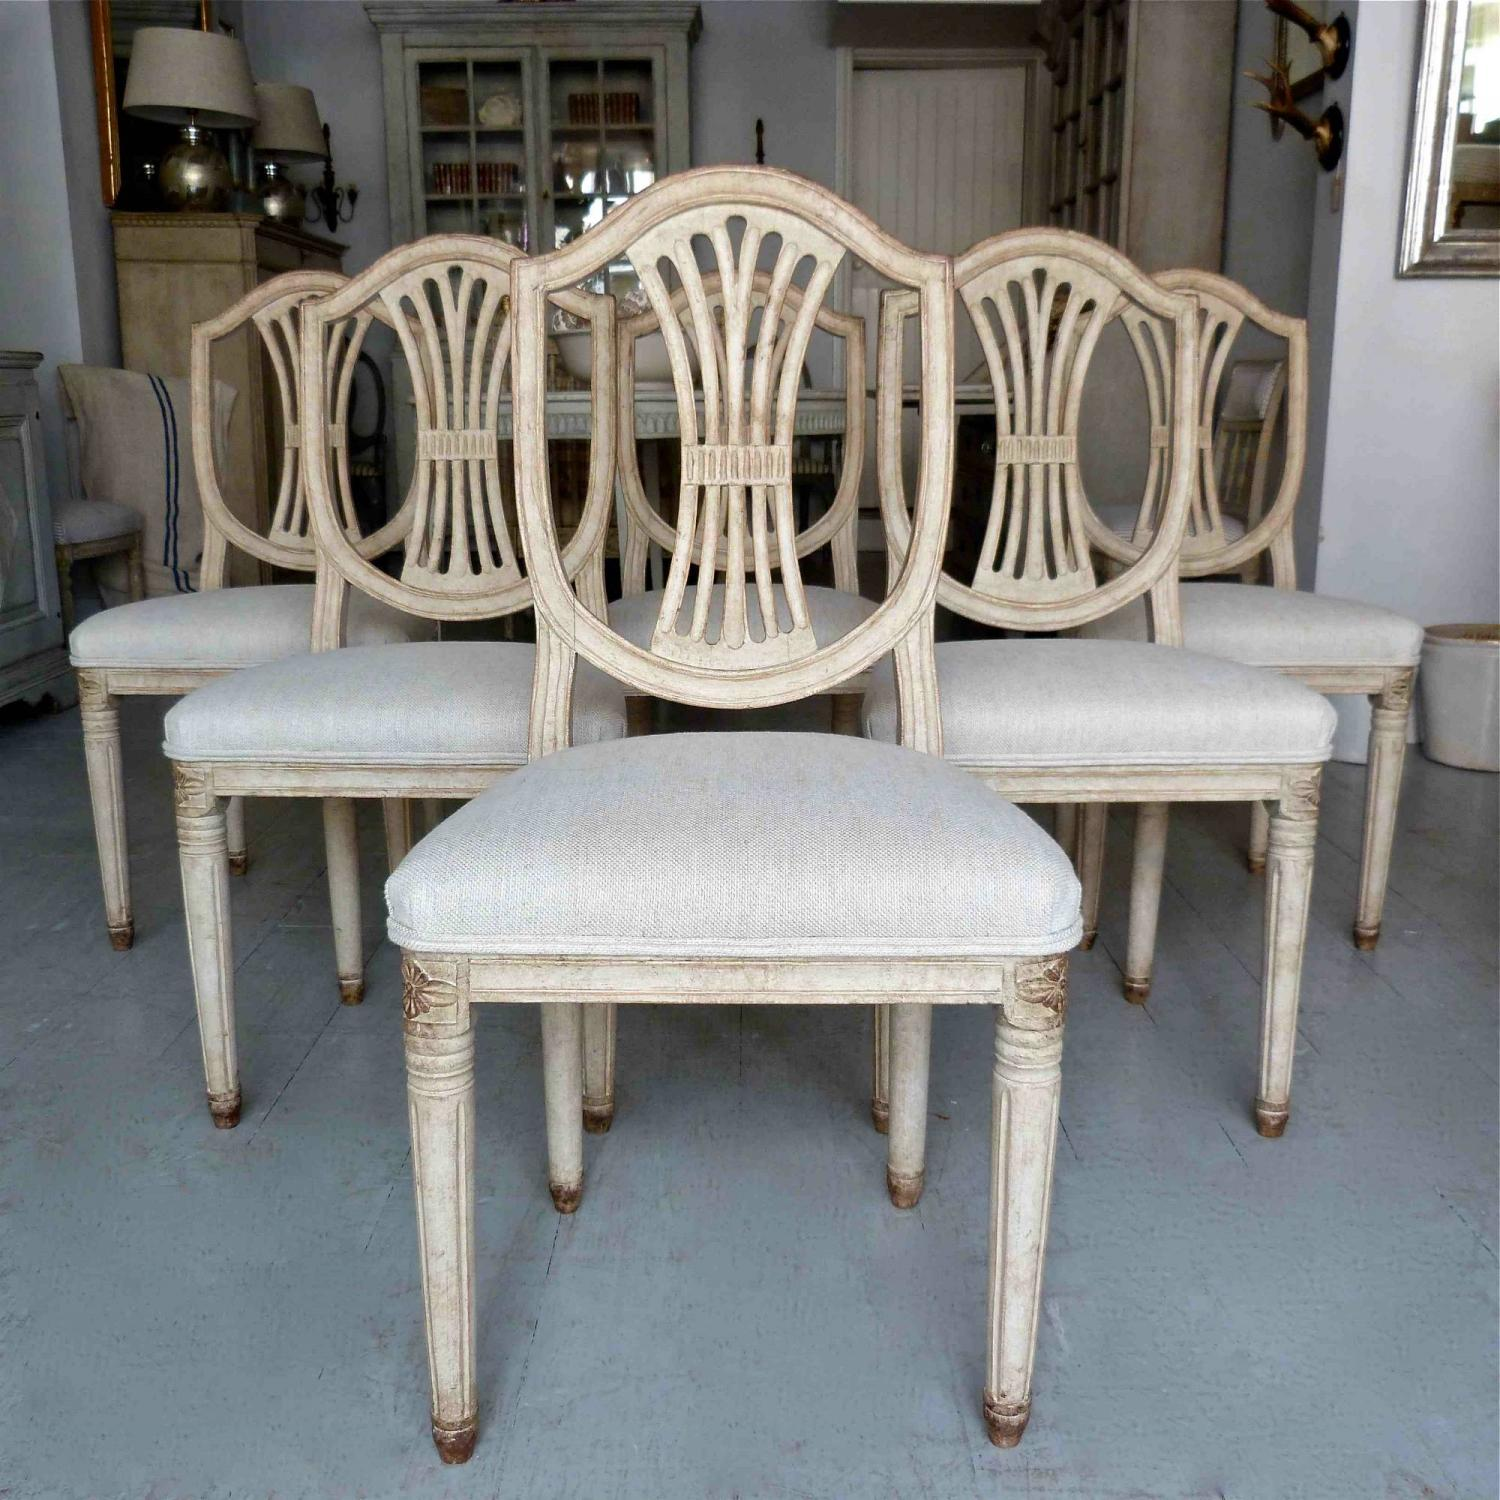 six 19th century swedish gustavian style chairs picture 1 - Gustavian Style Furniture